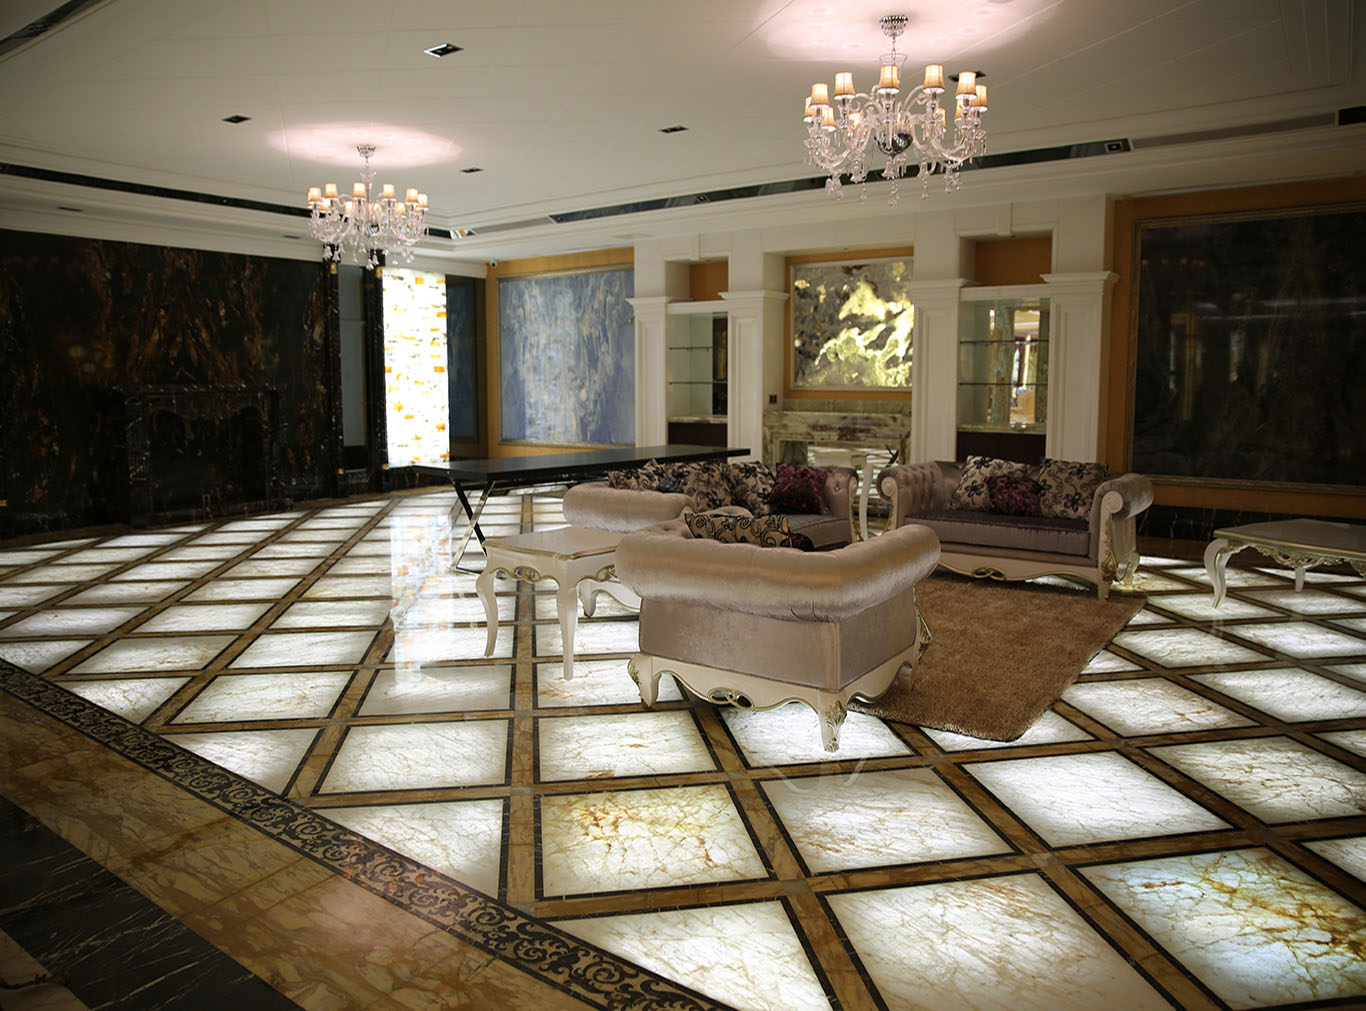 White Onyx Tile Floor